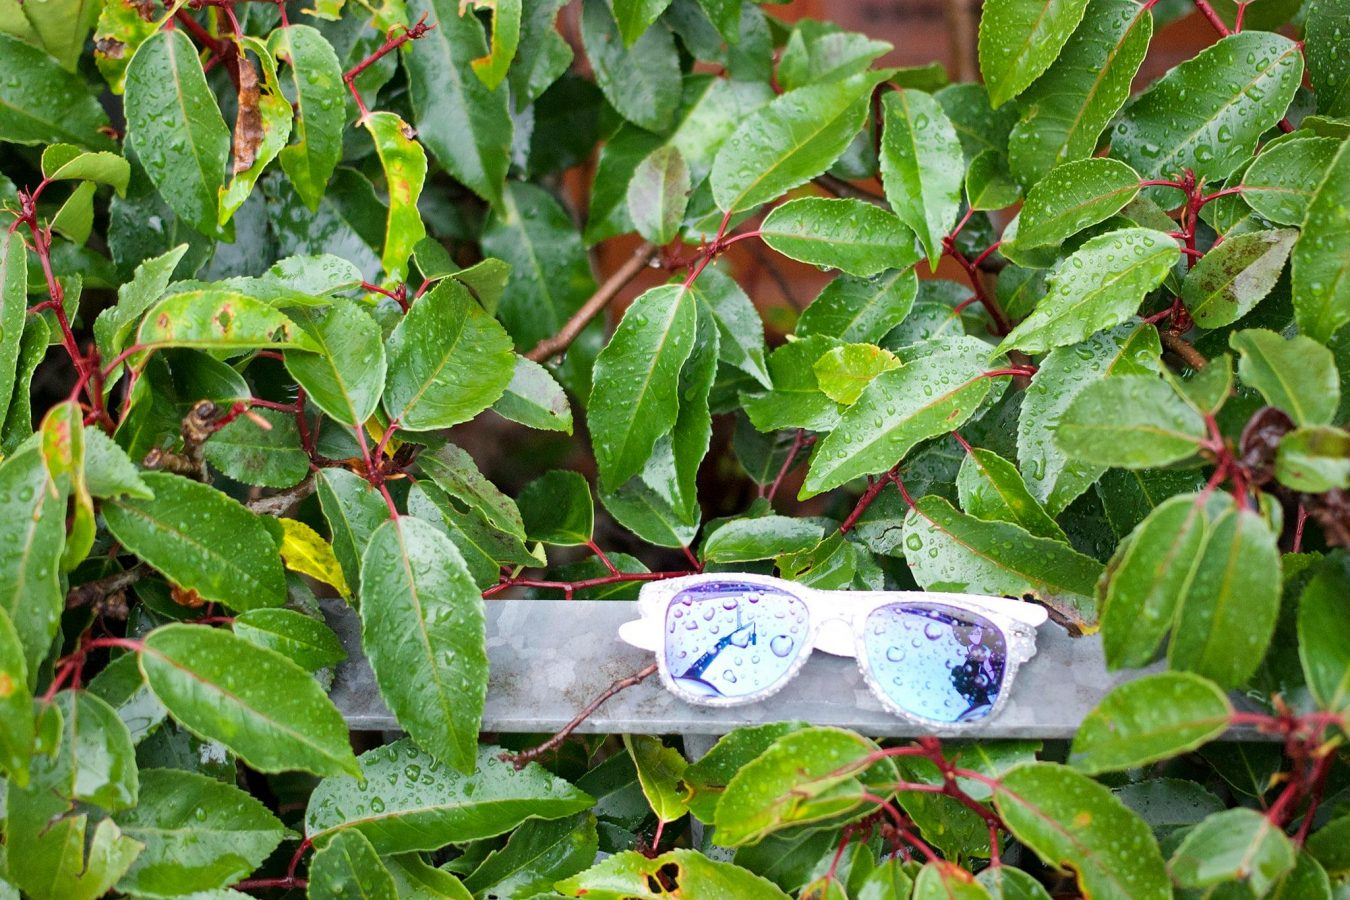 Lost sunglasses in the rain